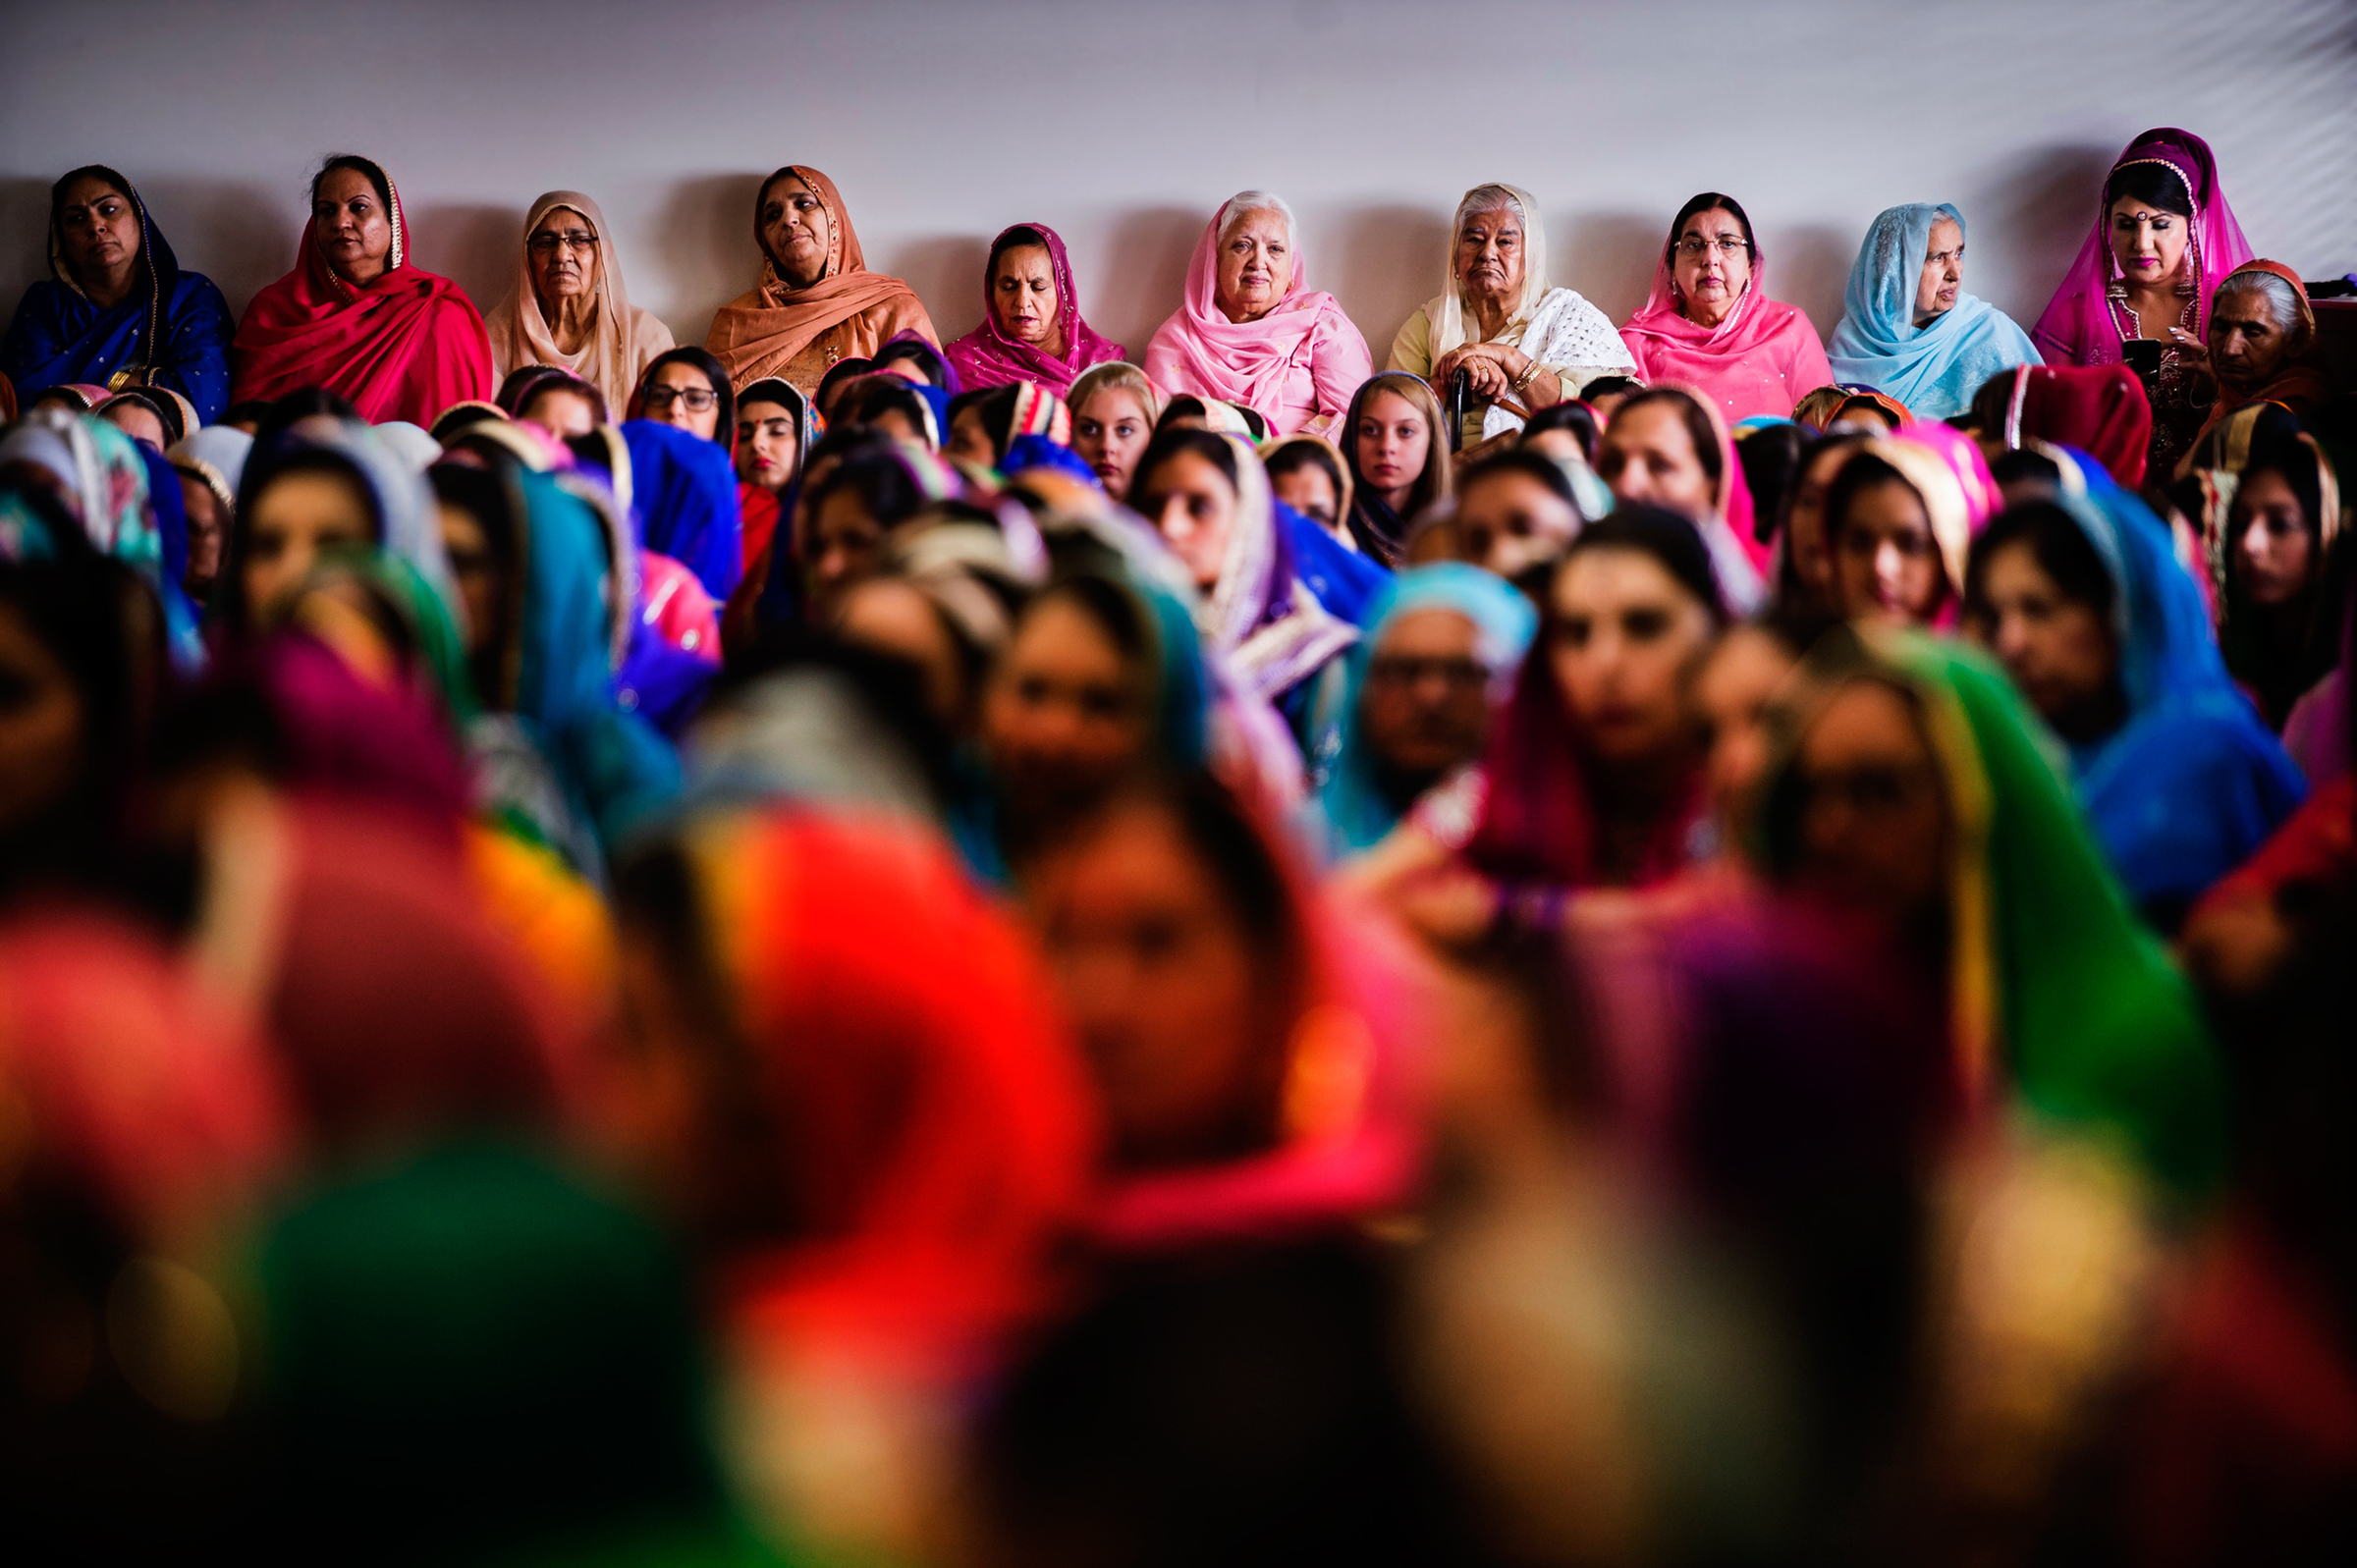 Colorful group shot of women at sikh wedding - photo by Jozef Povazan Photography